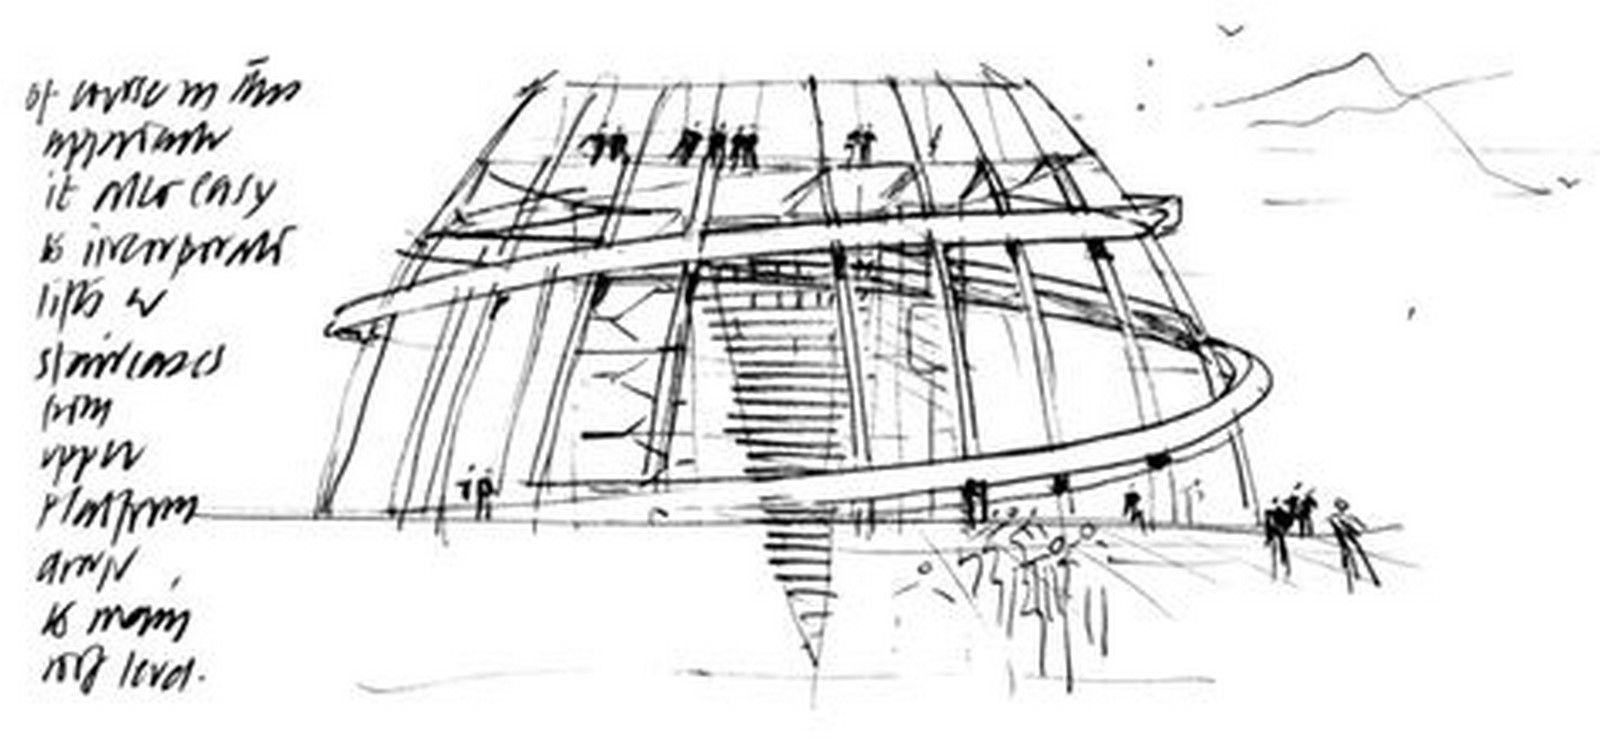 Understanding the design process of 10 famous architects - Sheet6